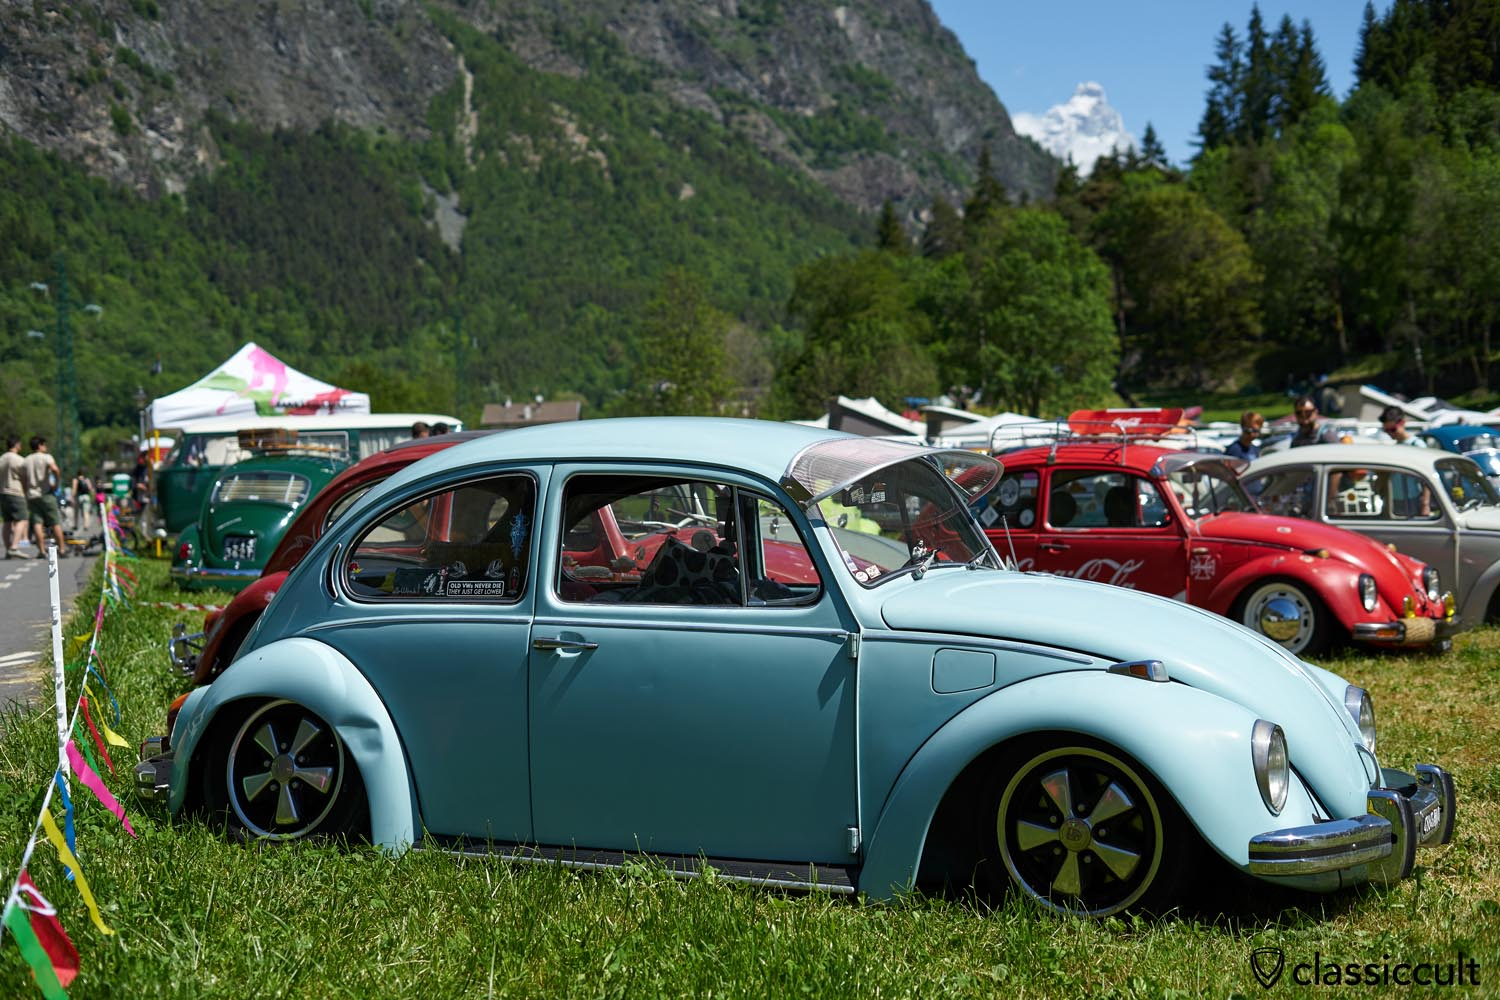 VW Beetle with Matterhorn mountain, Volks'n'Roll aircooled meeting, Italy 2019